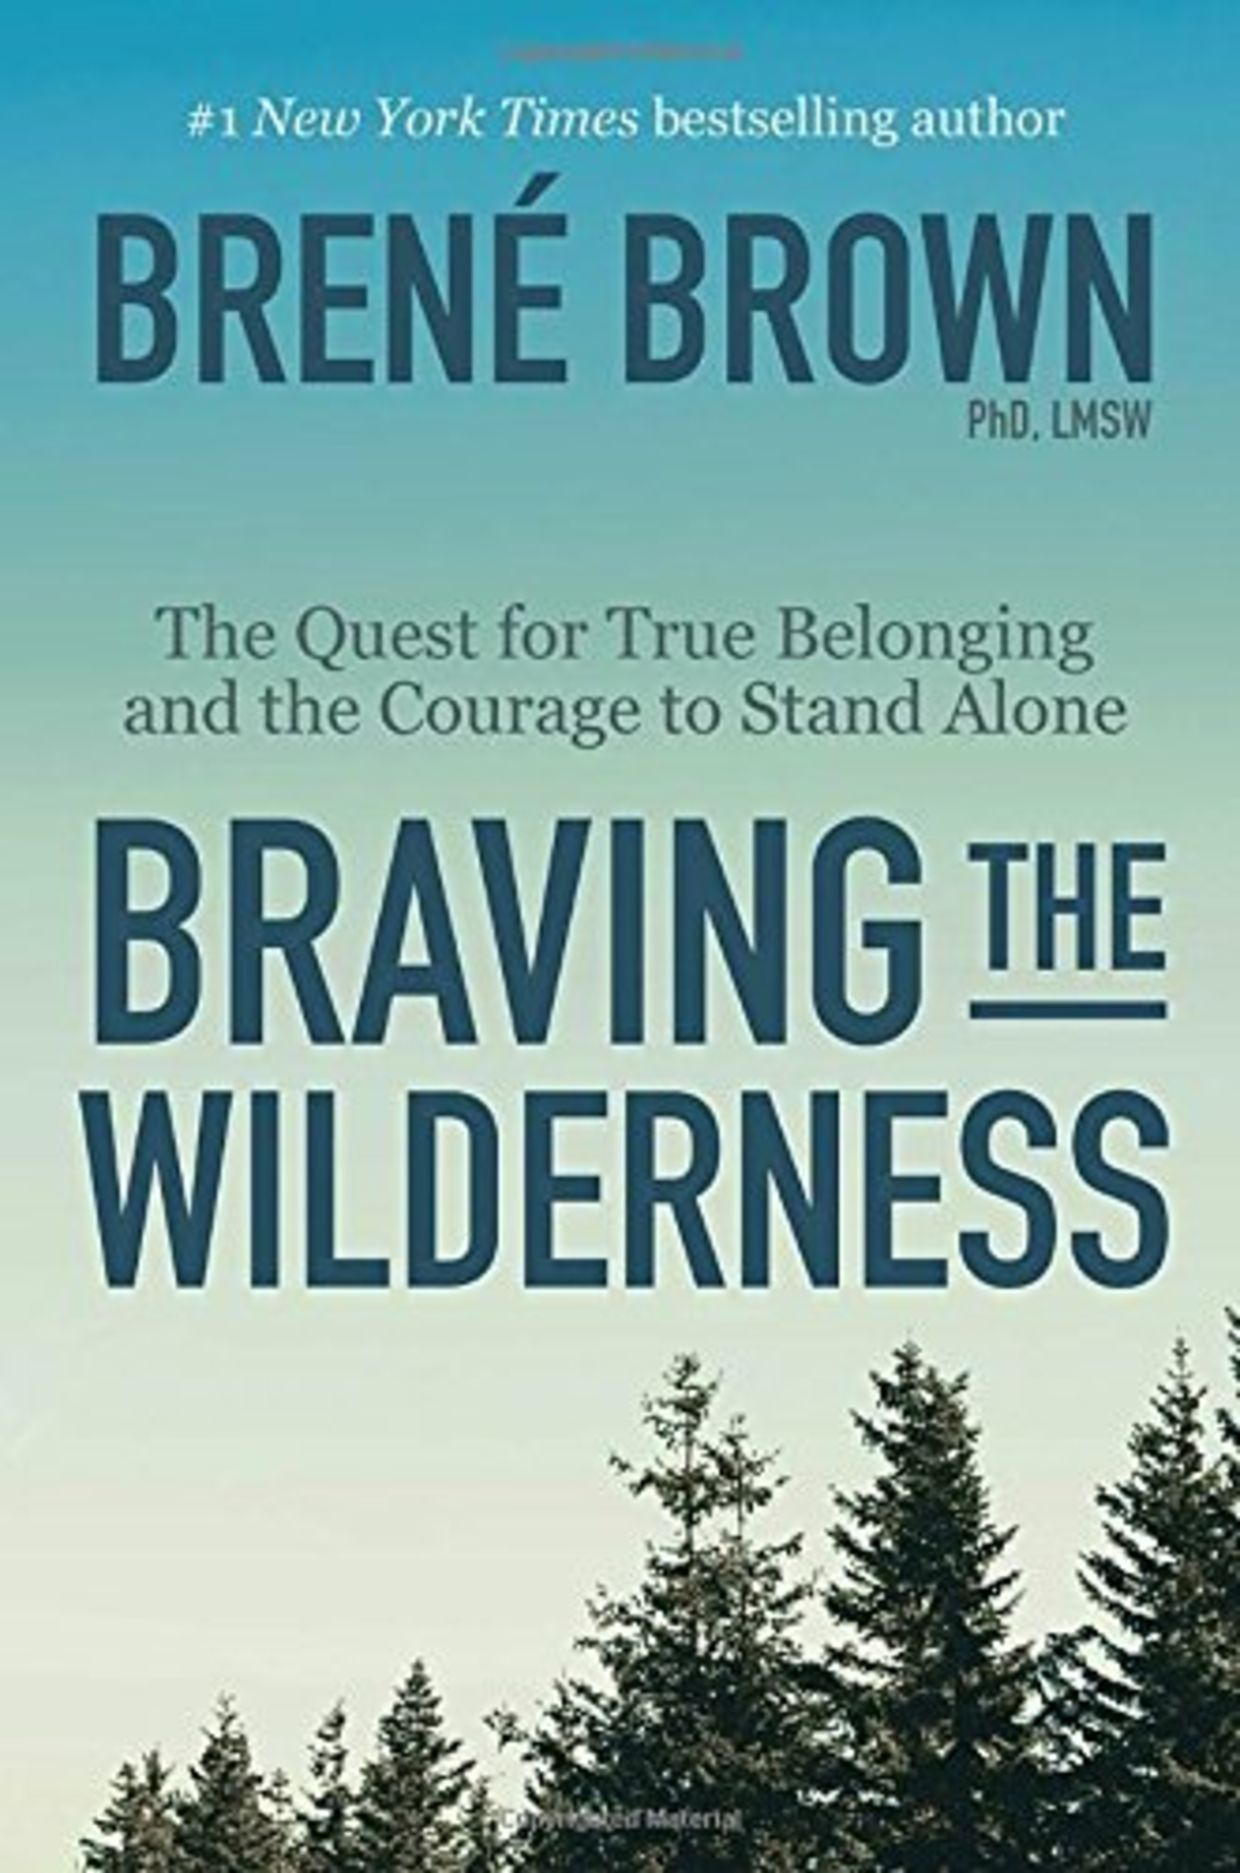 Braving the Wilderness: The Quest for True Belonging and the Courage to Stand Alone, by Brené Brown